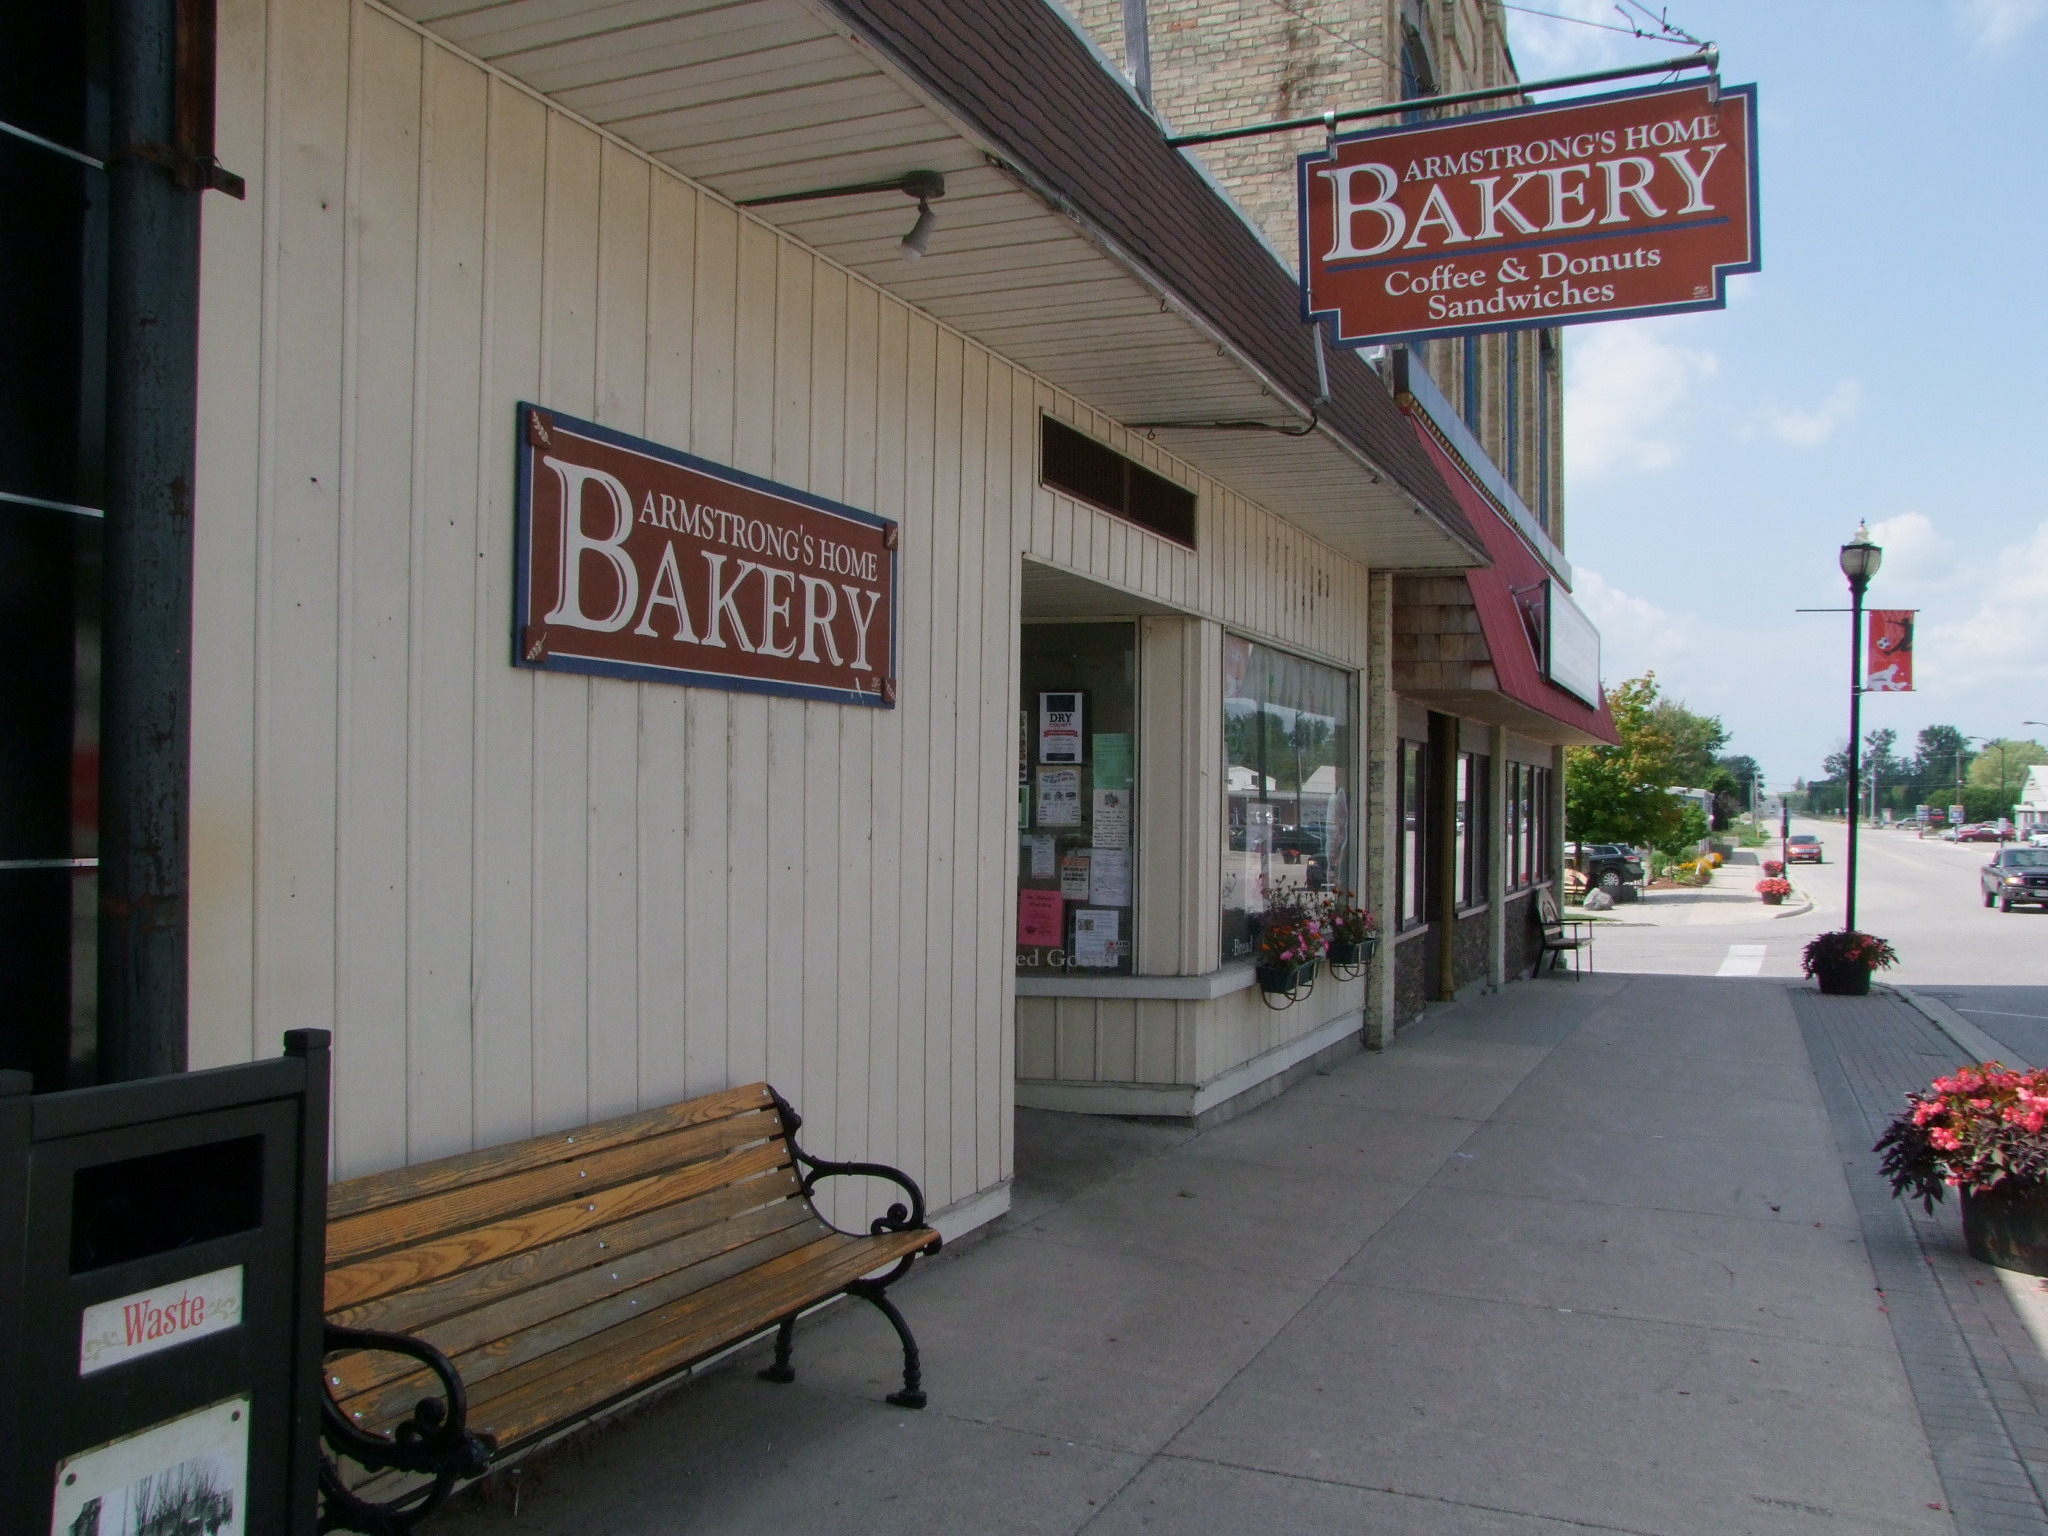 A picture of Armstrong's Home Bakery